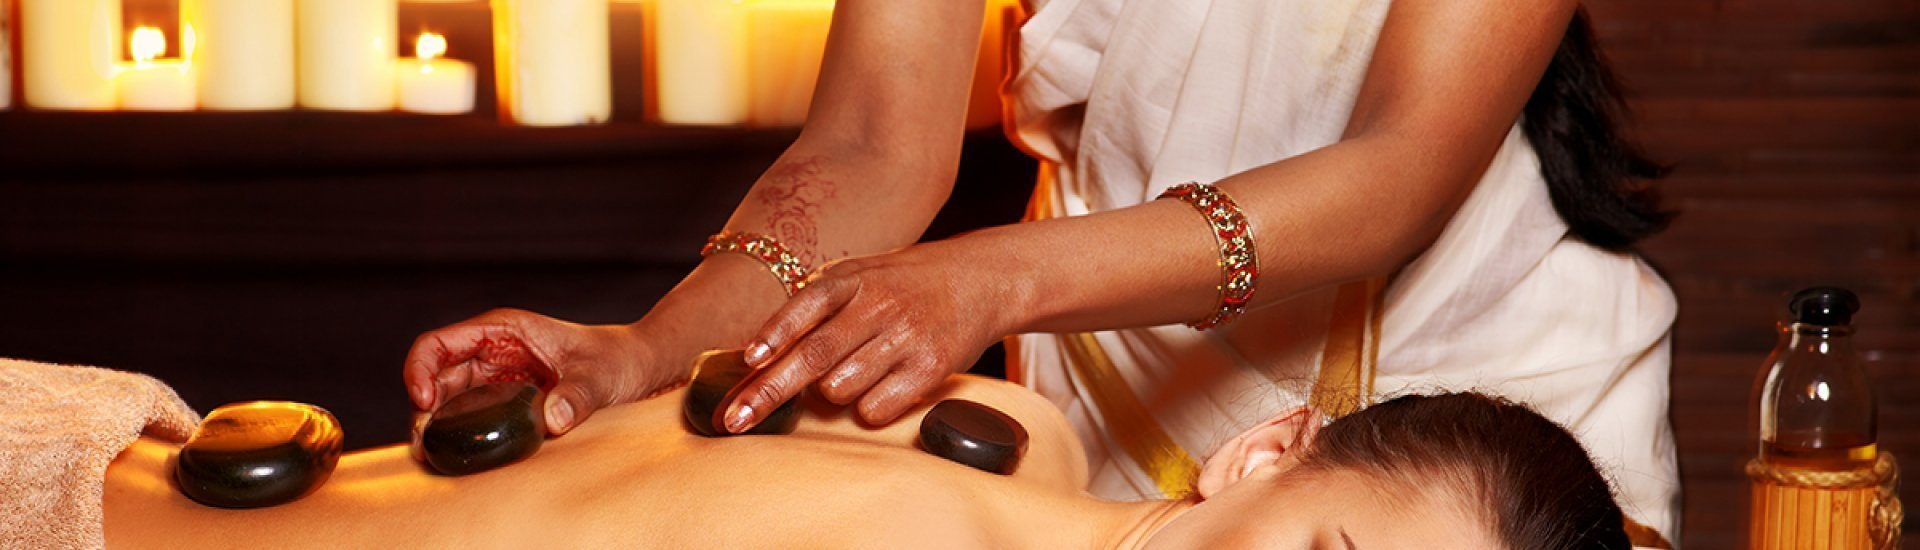 Ayurvedic Magic - 6 day package